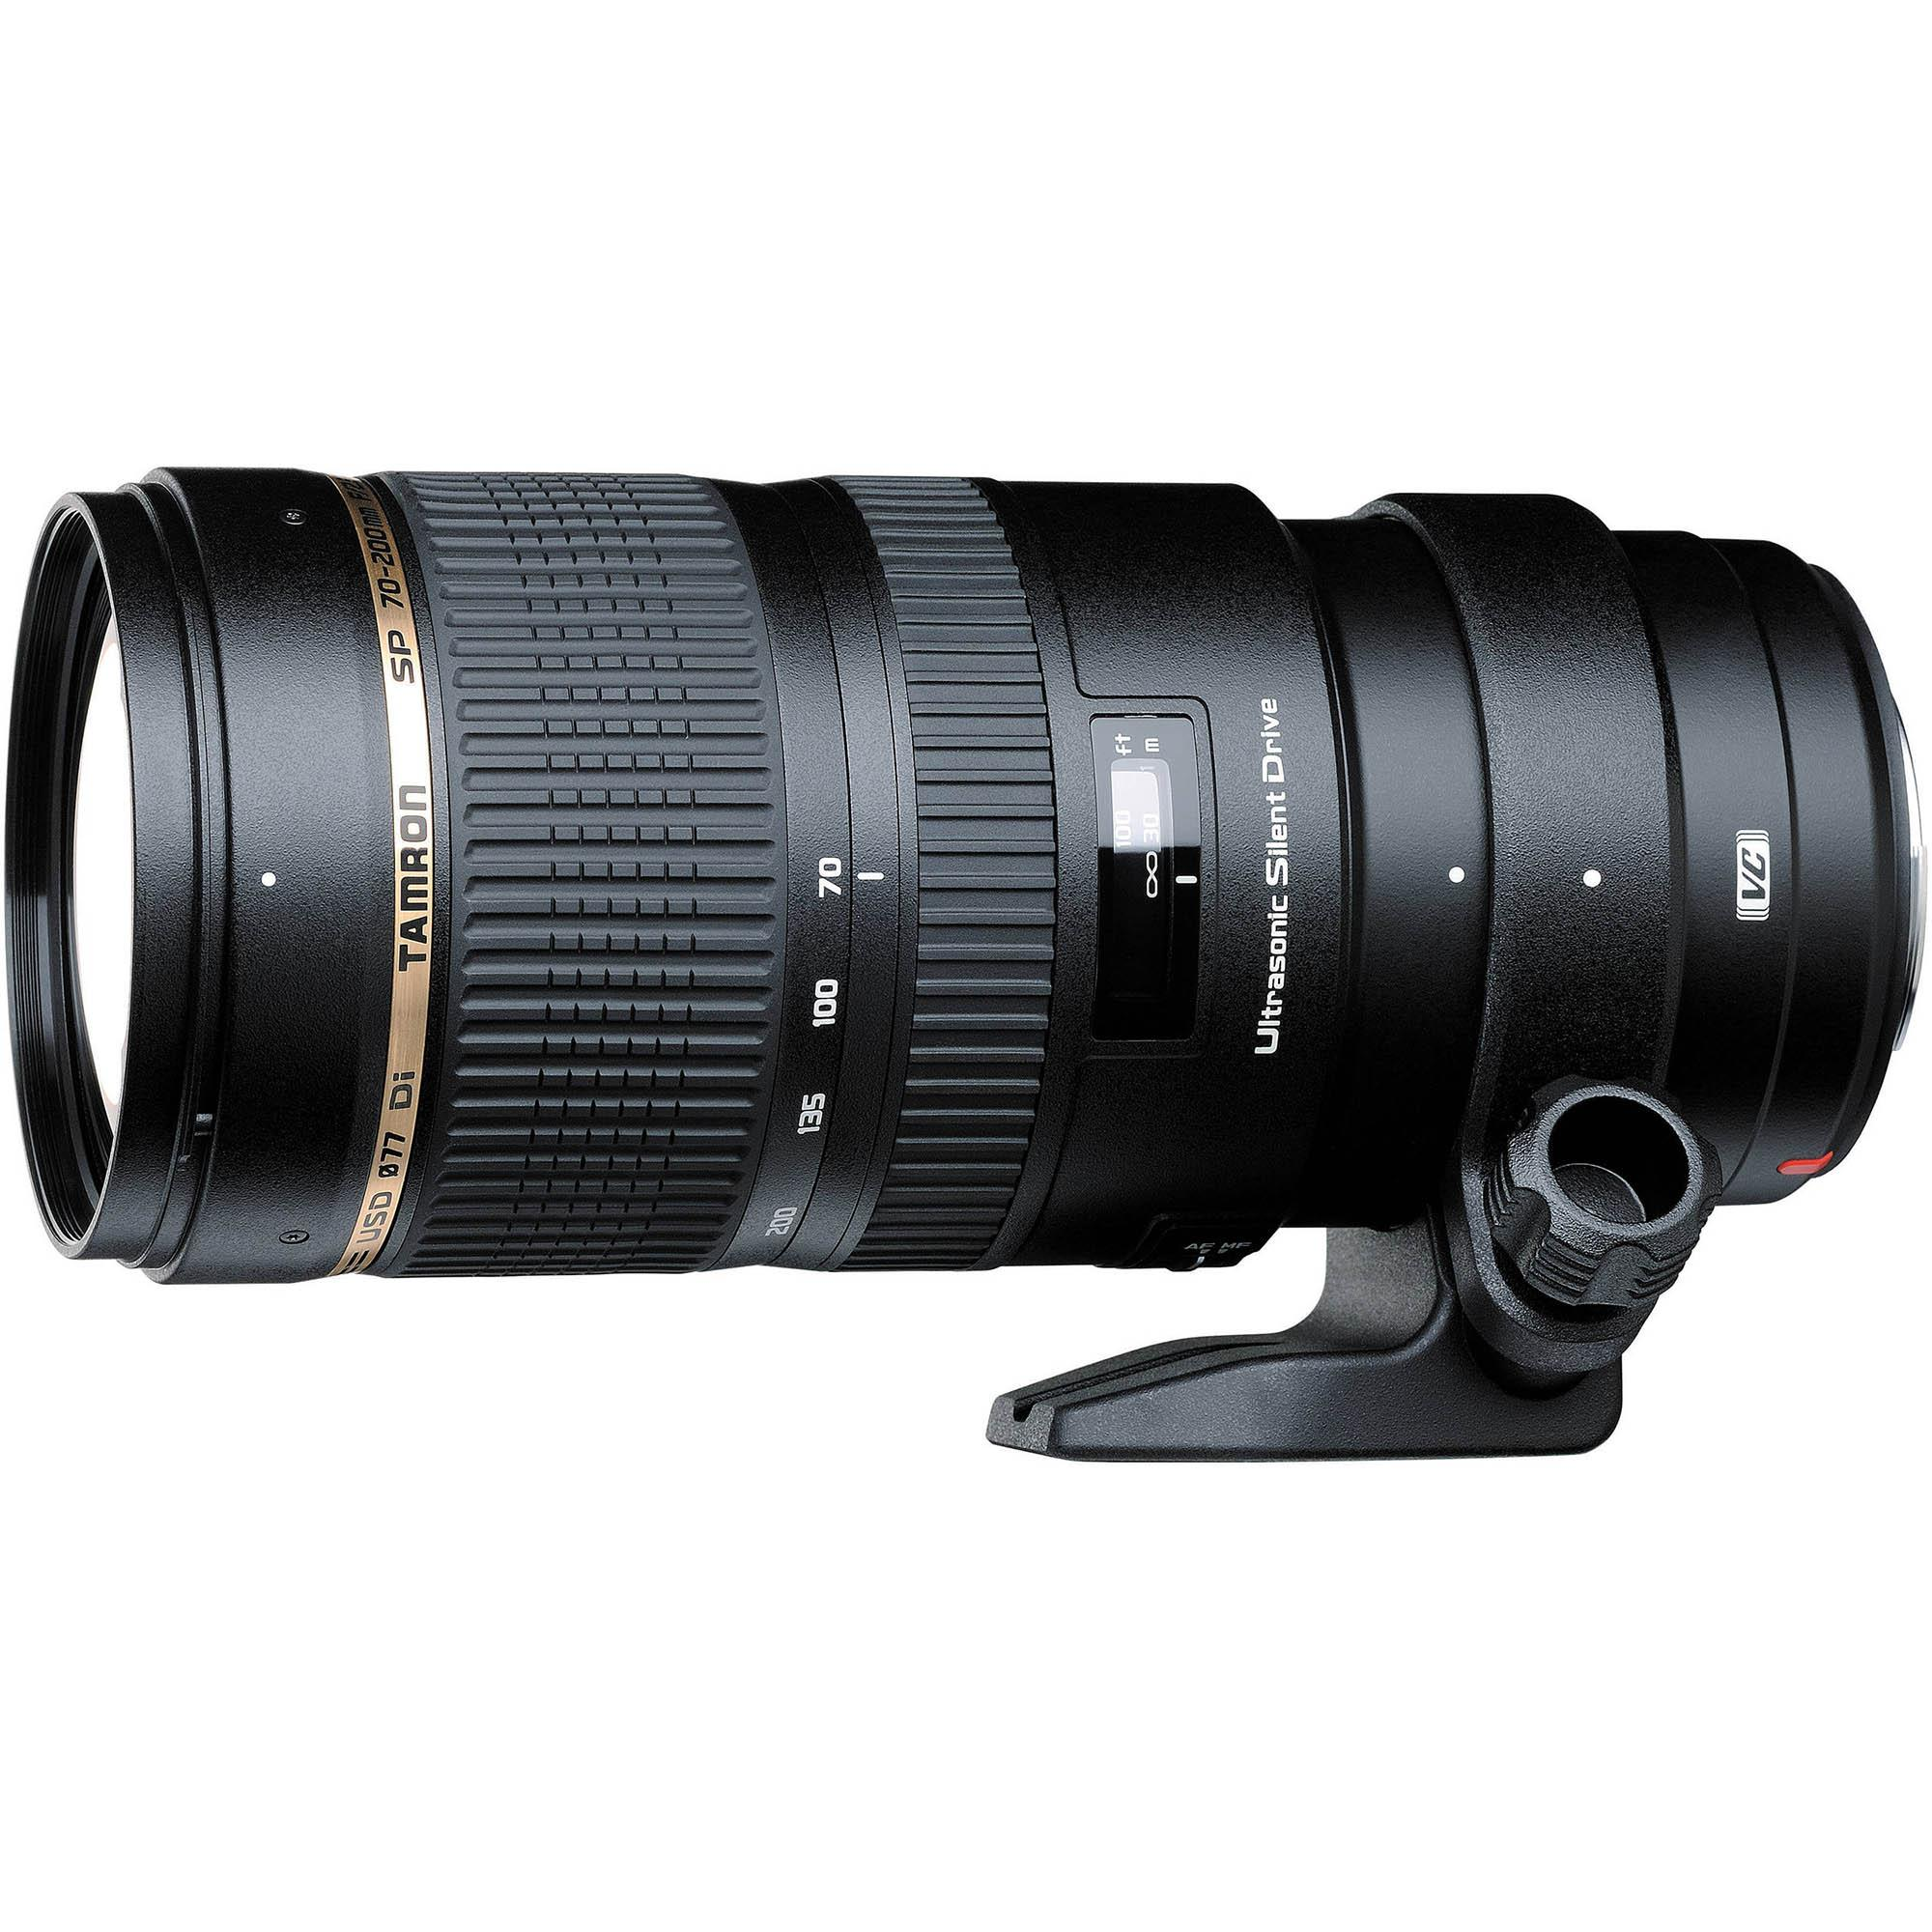 Tamron SP 70-200mm F2.8 DI VC USD For Nikon